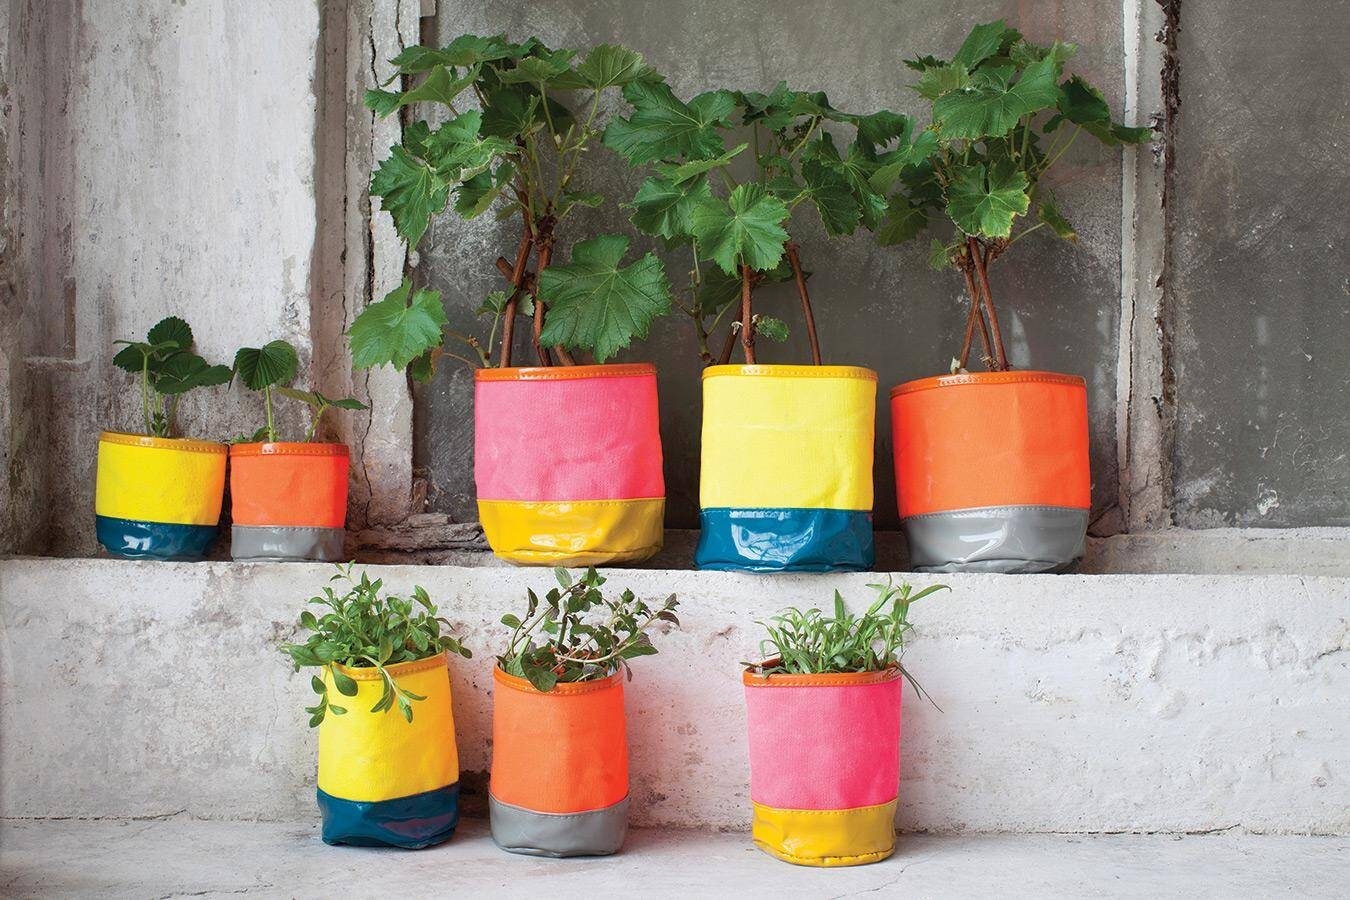 Flower pots can transform any garden or interior